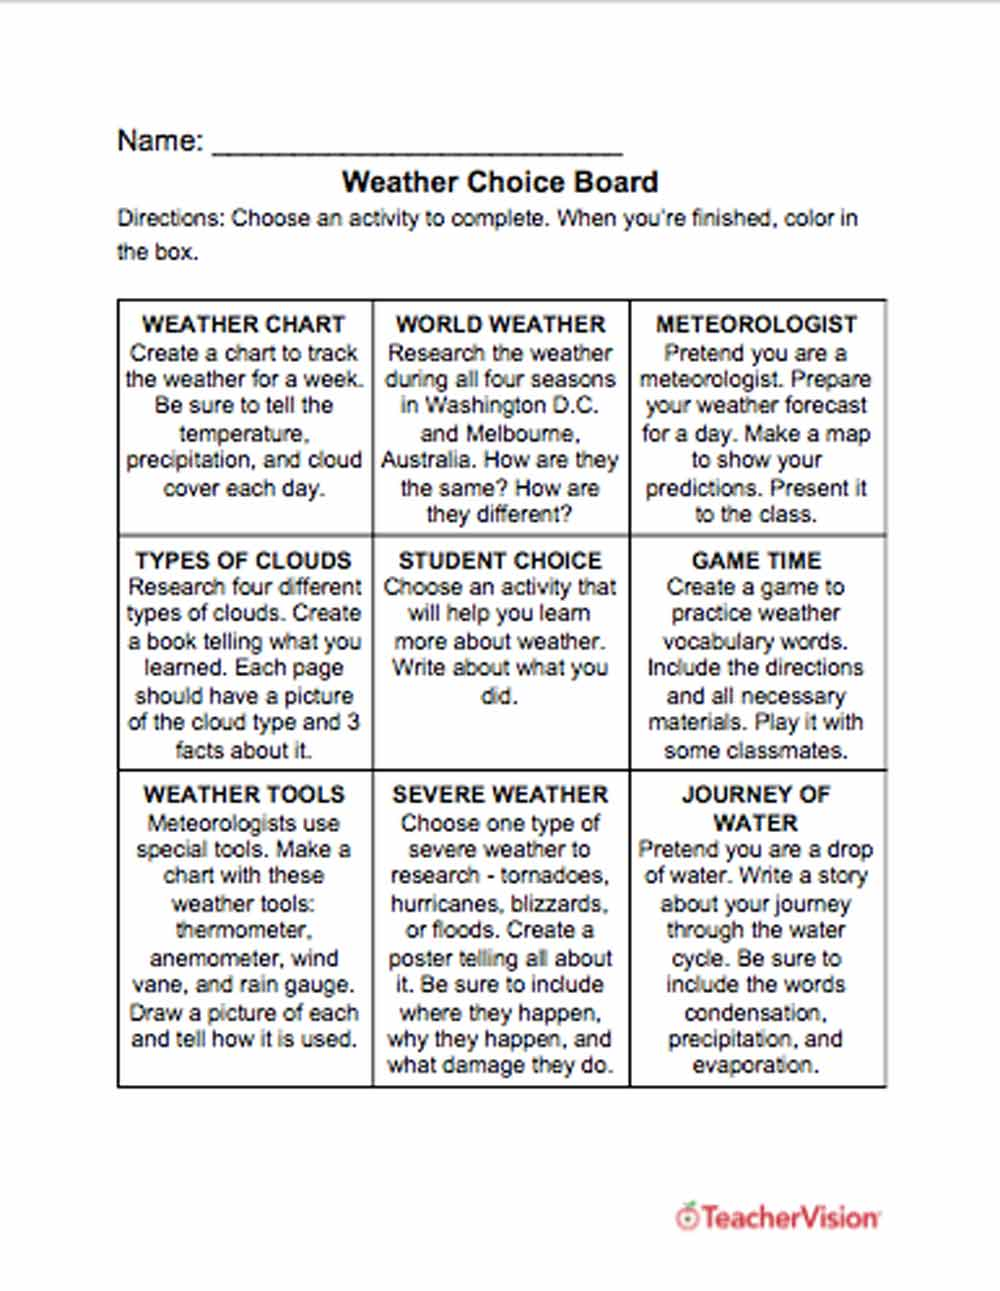 medium resolution of Weather Choice Board - TeacherVision